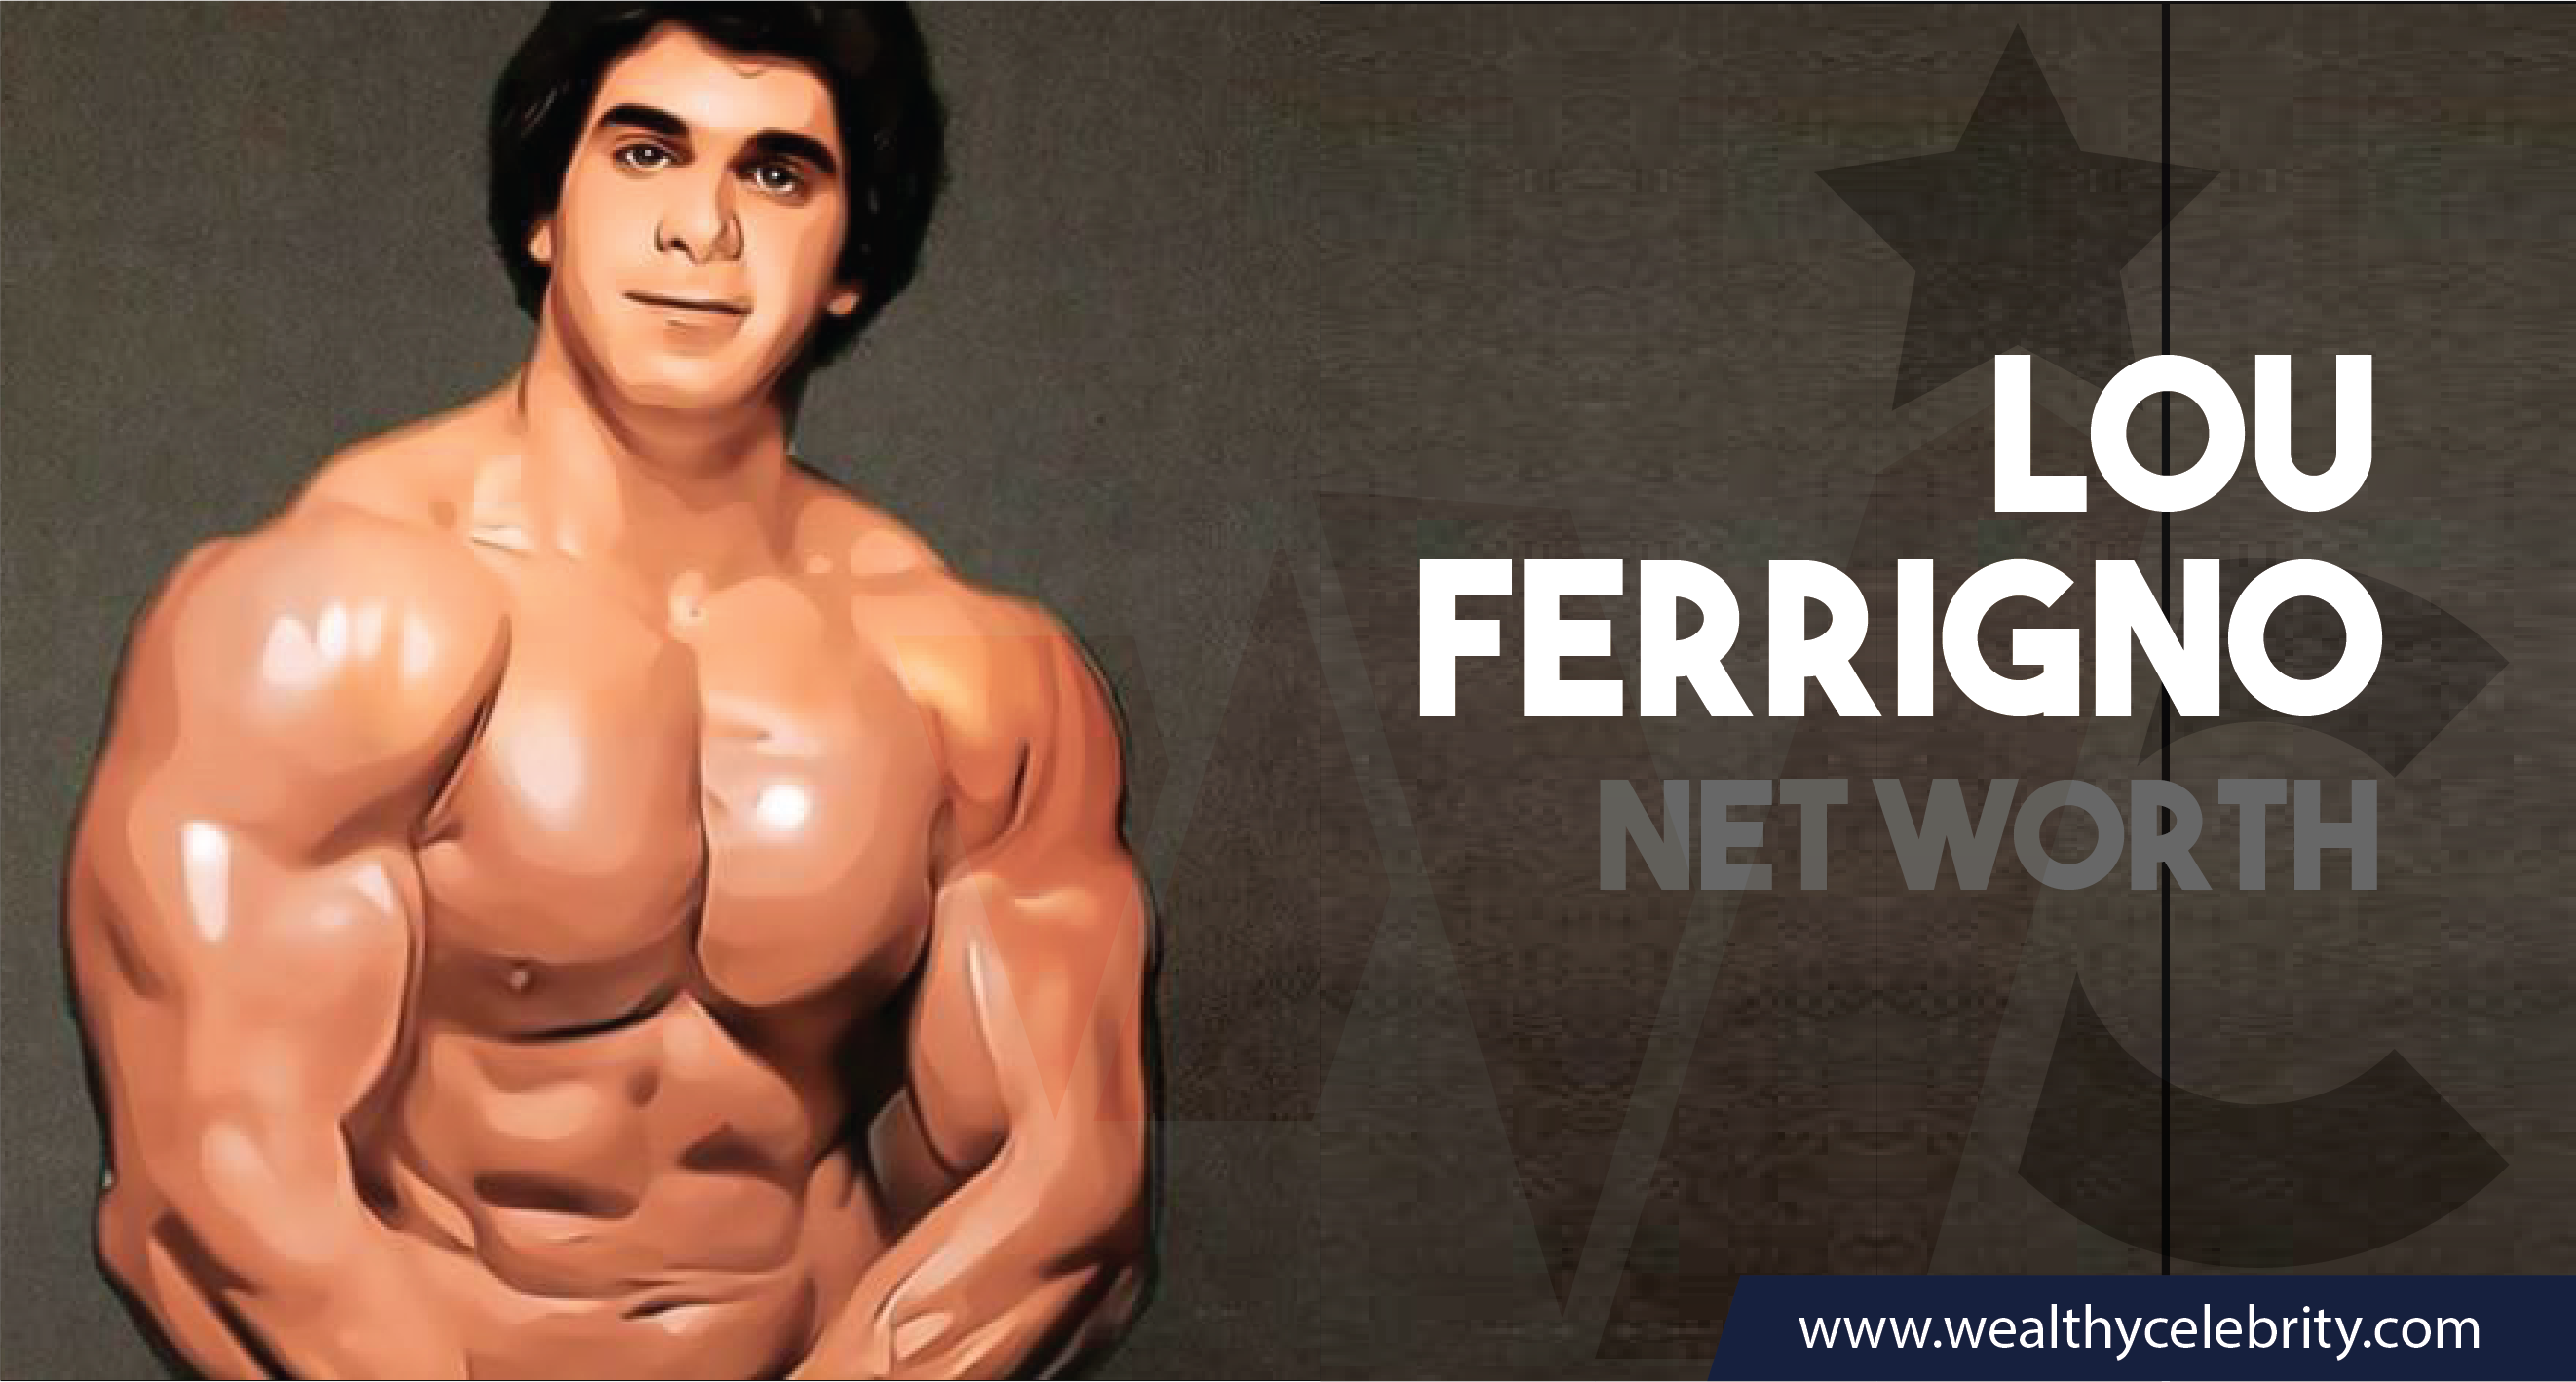 Lou Ferrigno_Net worth